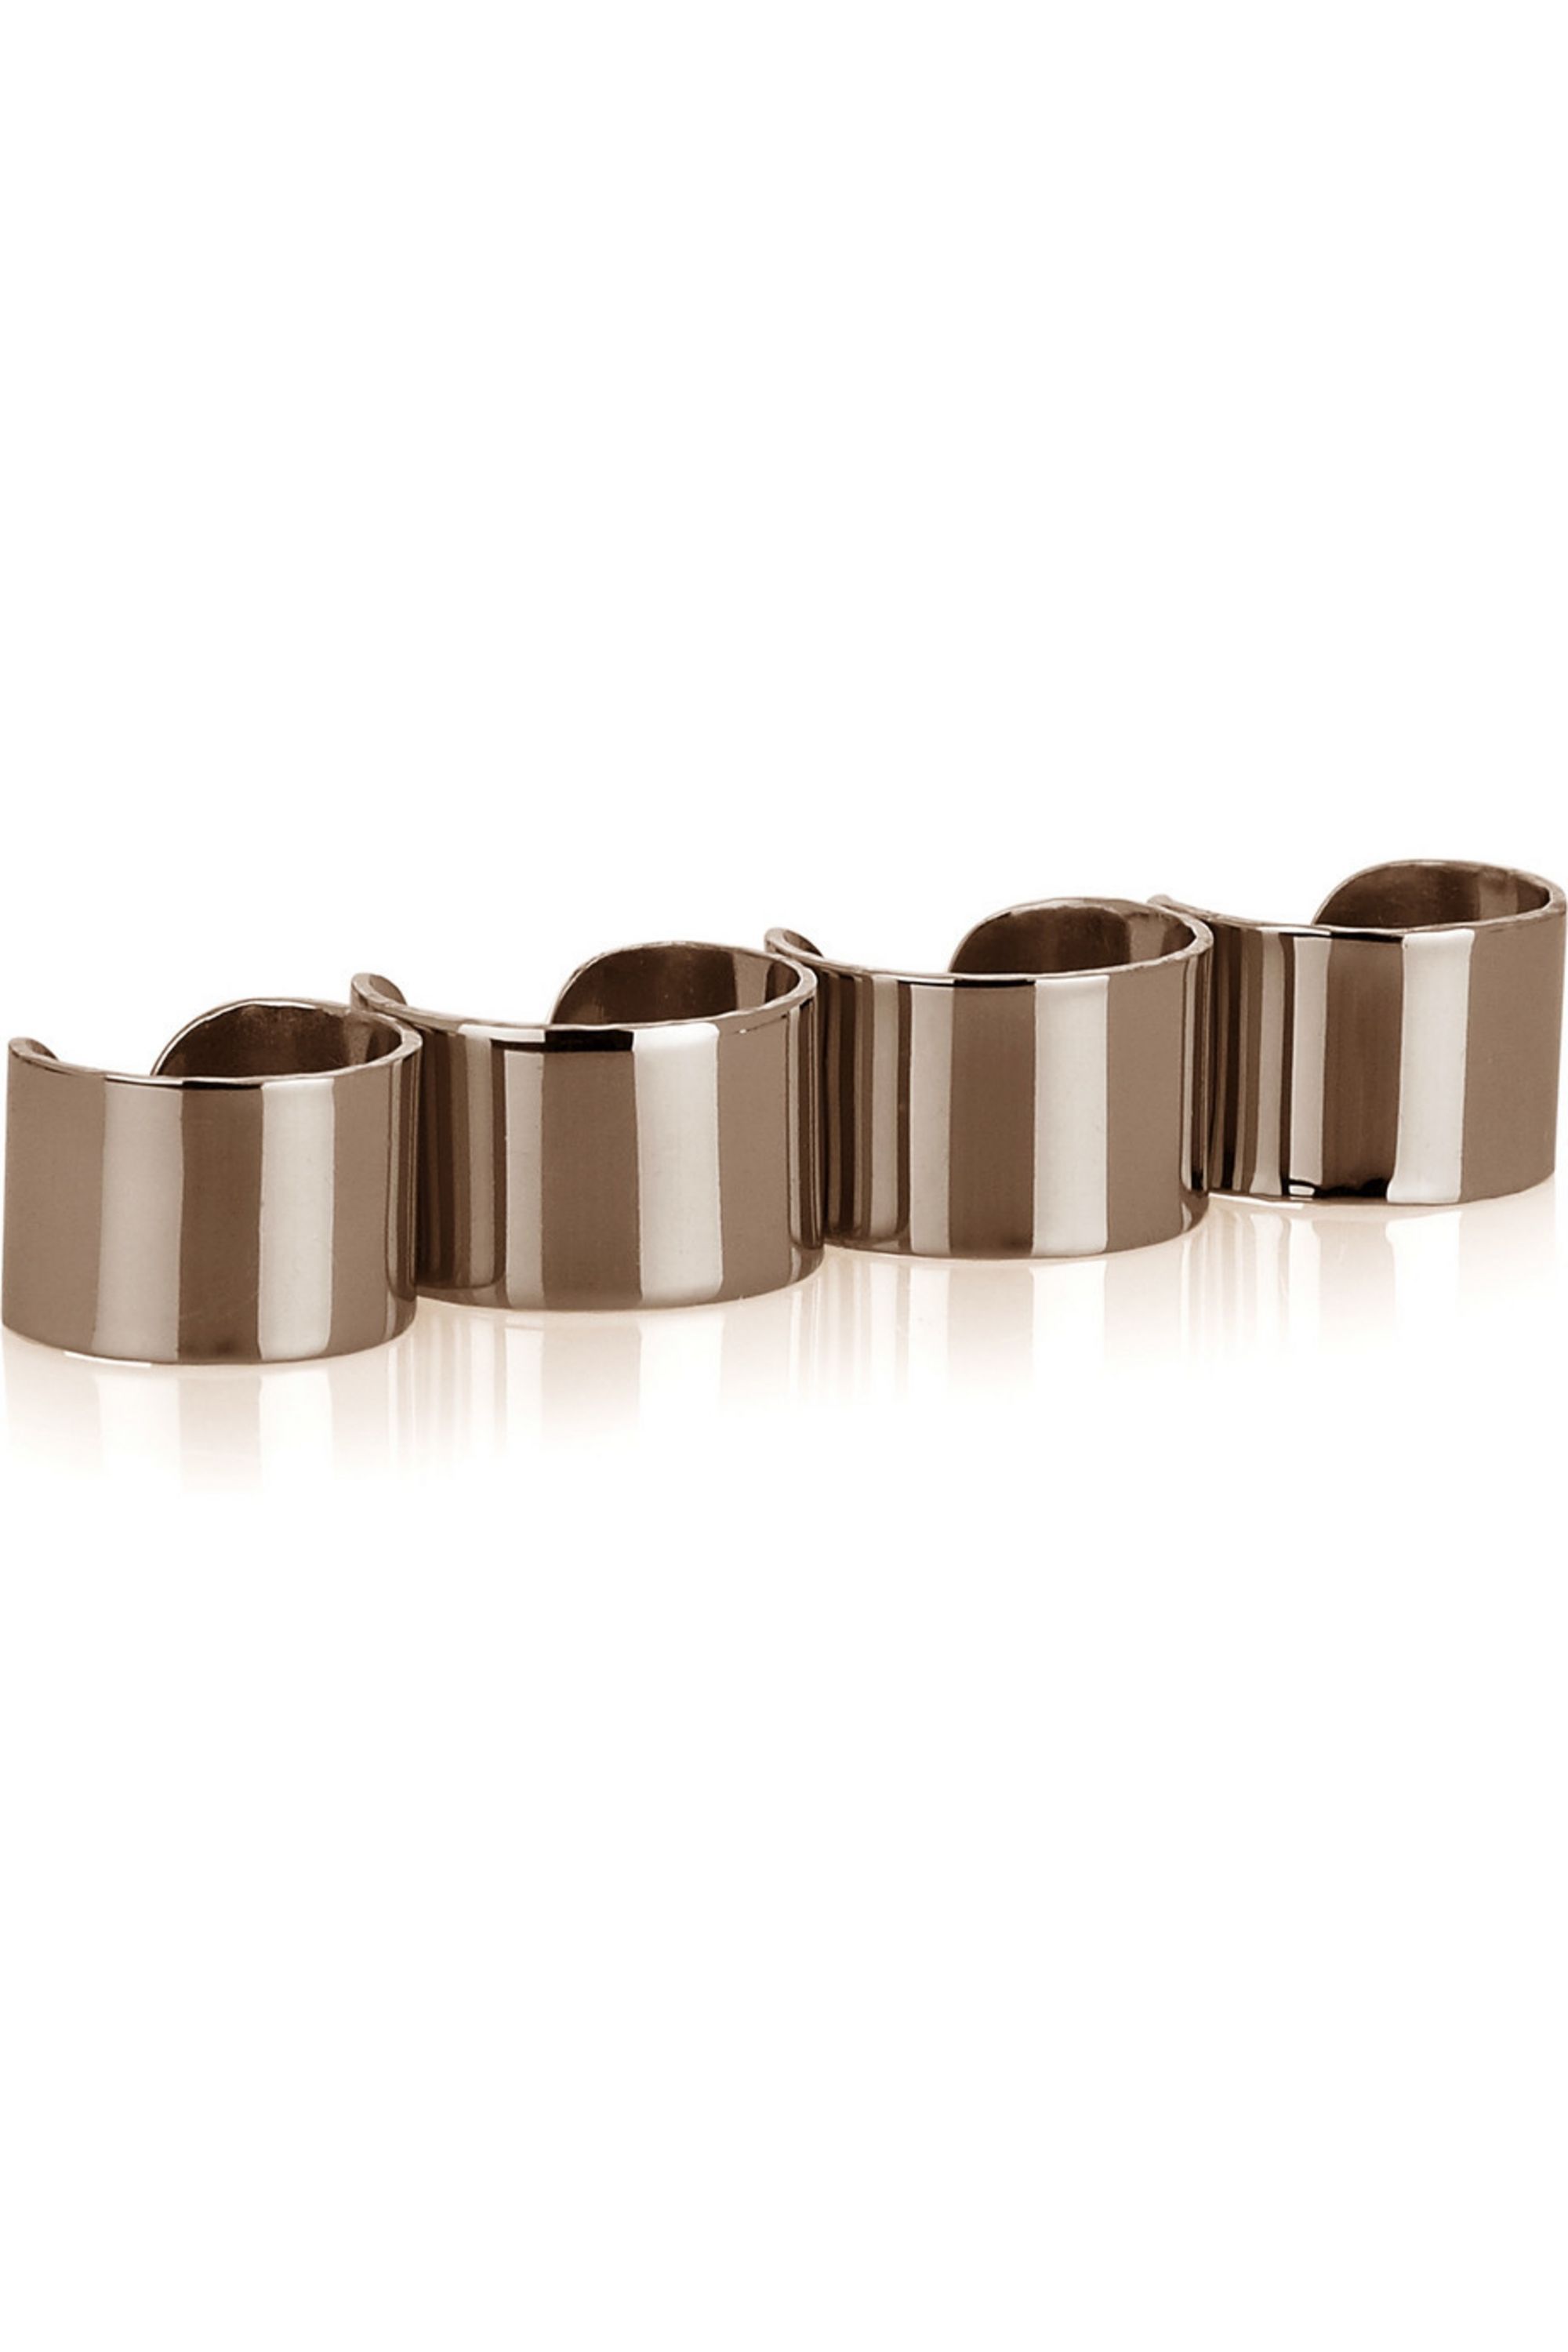 Maison Margiela Set of four bronze-plated sterling silver knuckleduster rings